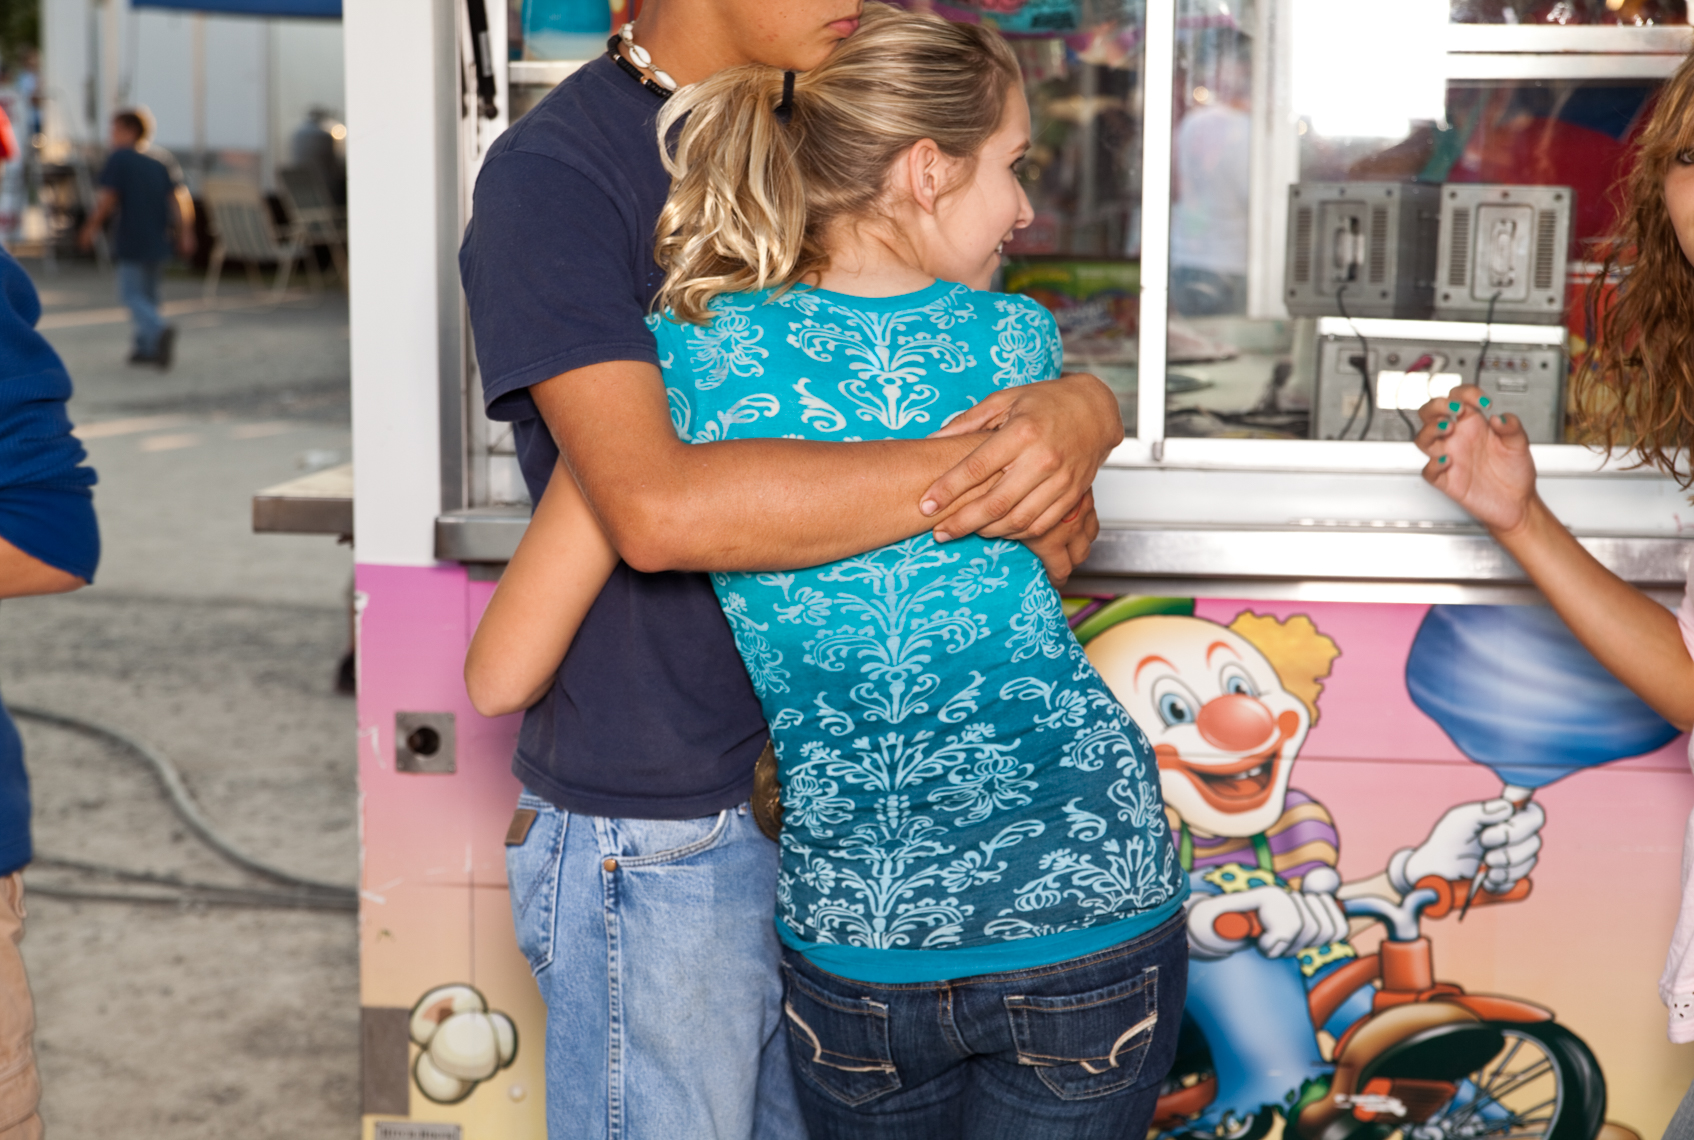 Young teen couple,  Wilson County Fair, Lebanon, Tennessee, carnival, amusement park, rural south, cotton candy, food truck